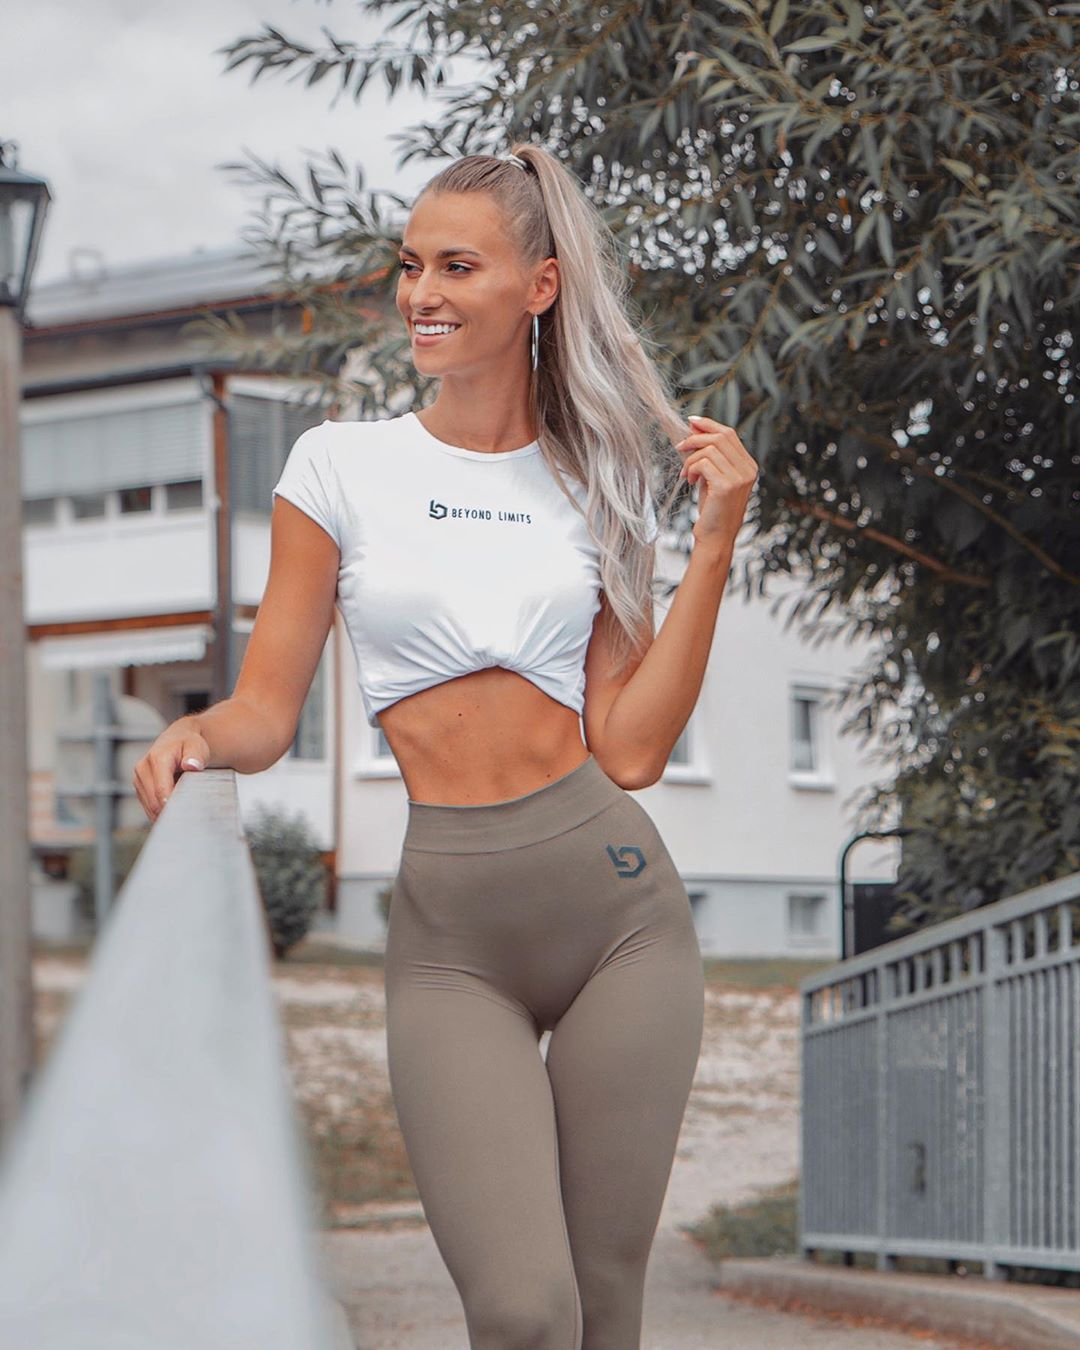 Sabrina-Guric-Wallpapers-Insta-Fit-Bio-4